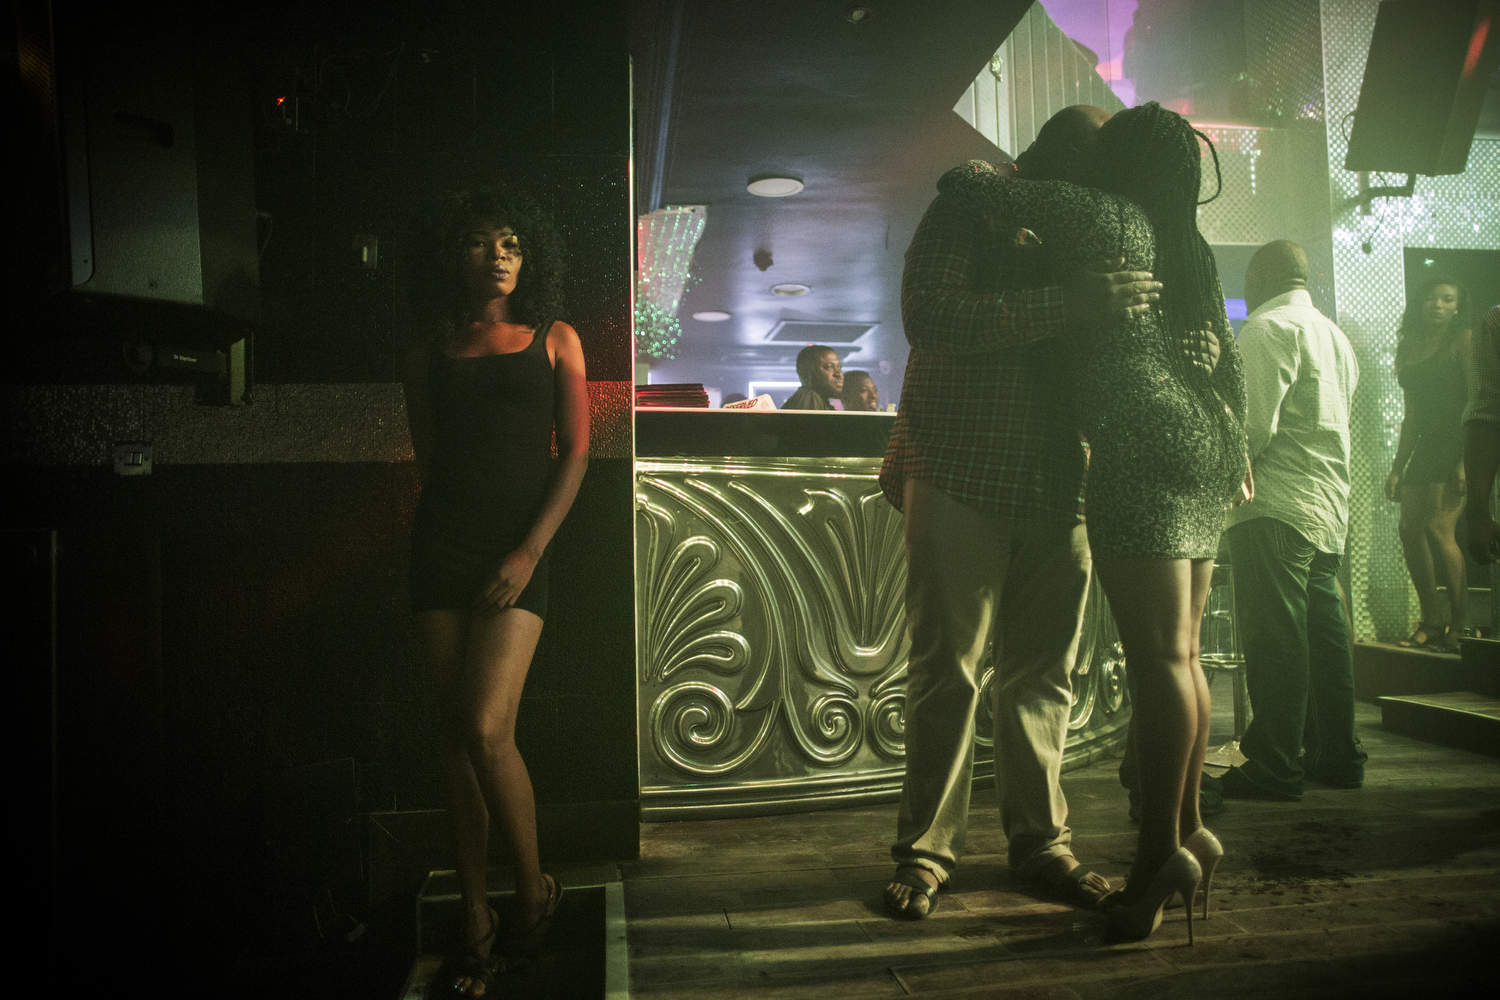 A waitress waits by the wall at Quilox, a popular nightspot in Victoria Island, Lagos's poshest neighborhood.